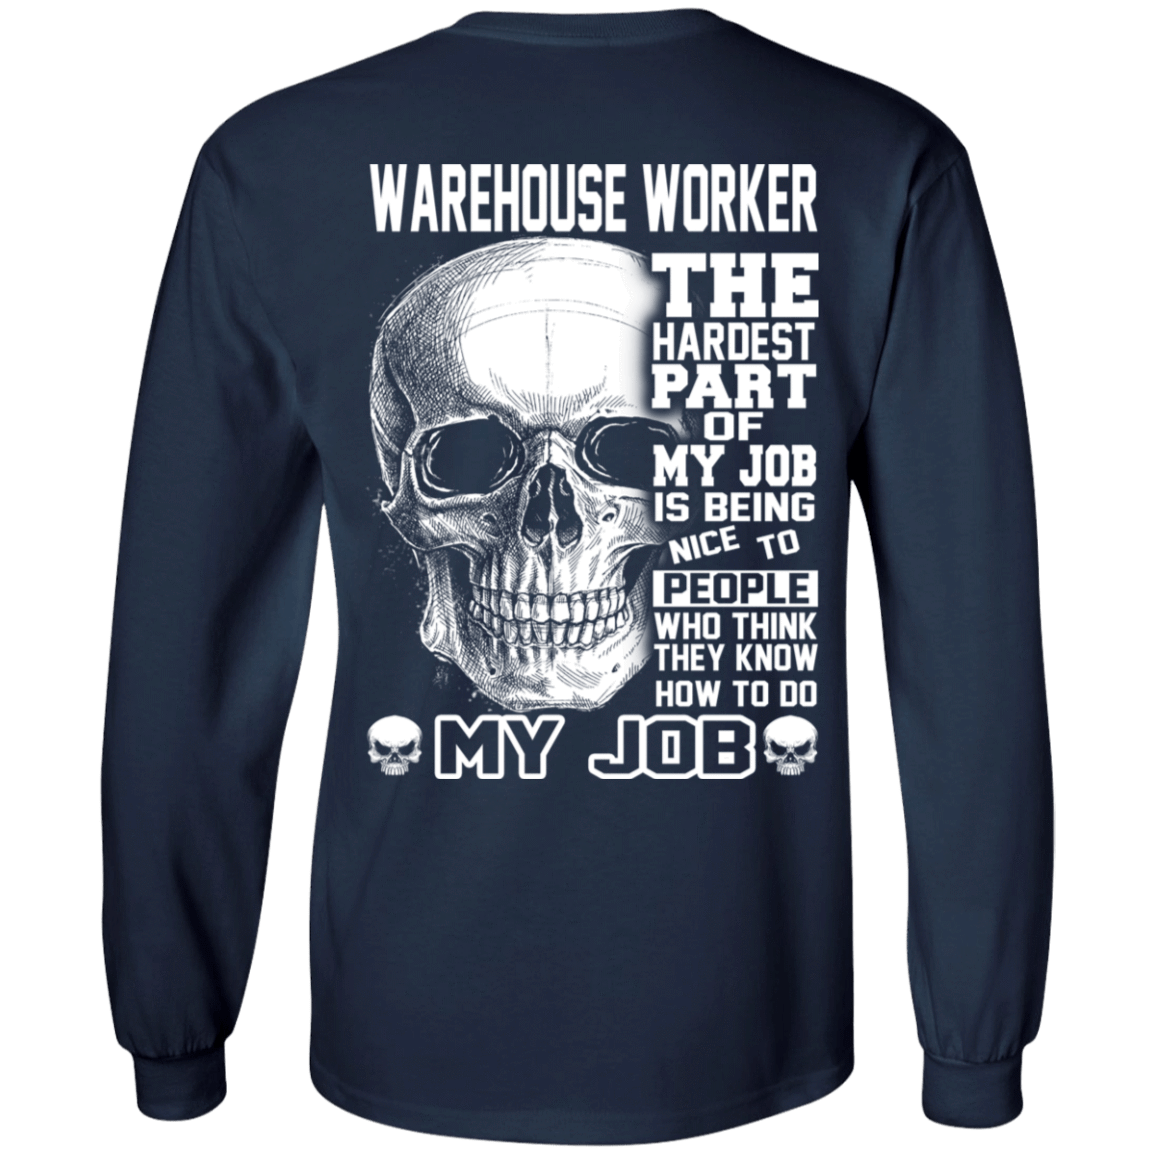 Warehouse Worker The Hardest Part Of My Job 30-184-71609200-331 - Tee Ript